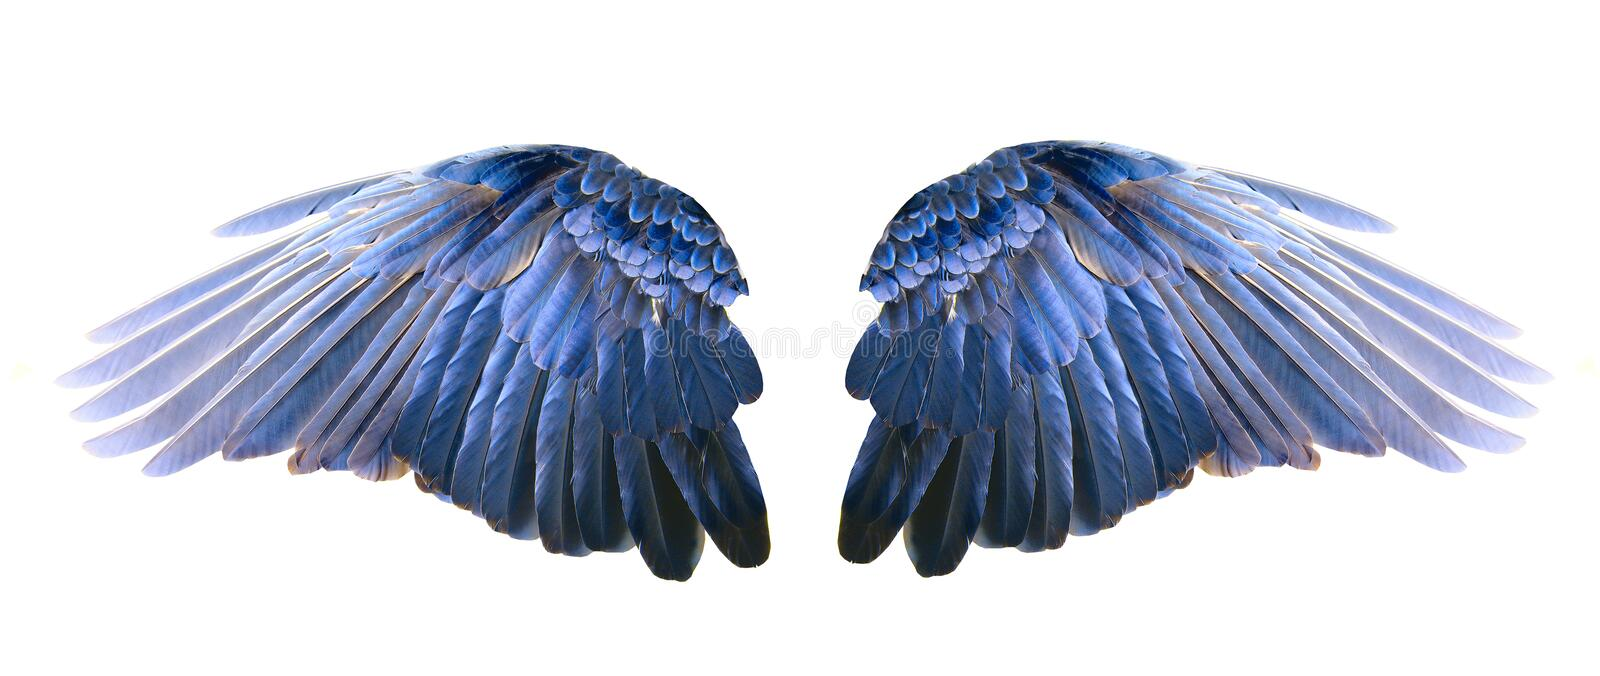 Blue wings royalty free stock photo